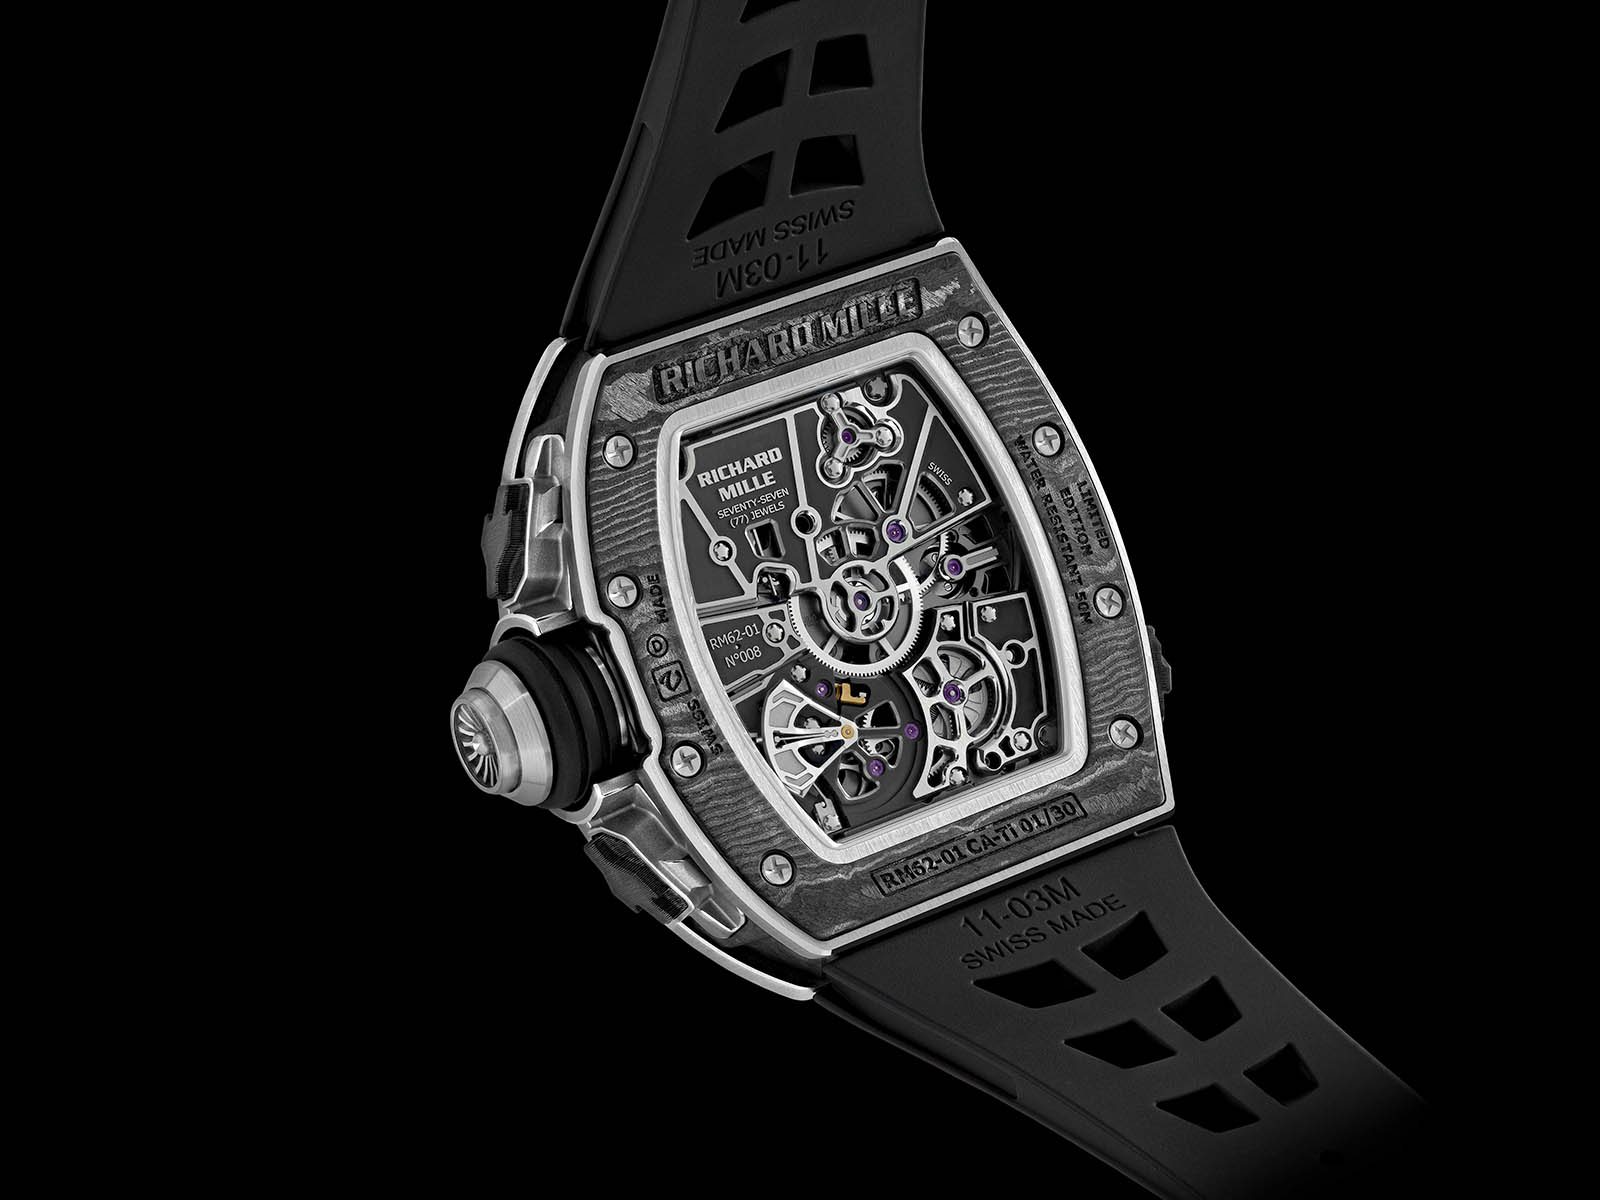 richard-mille-rm-62-01-tourbillon-vibrating-alarm-airbus-corporate-jets-6.jpg